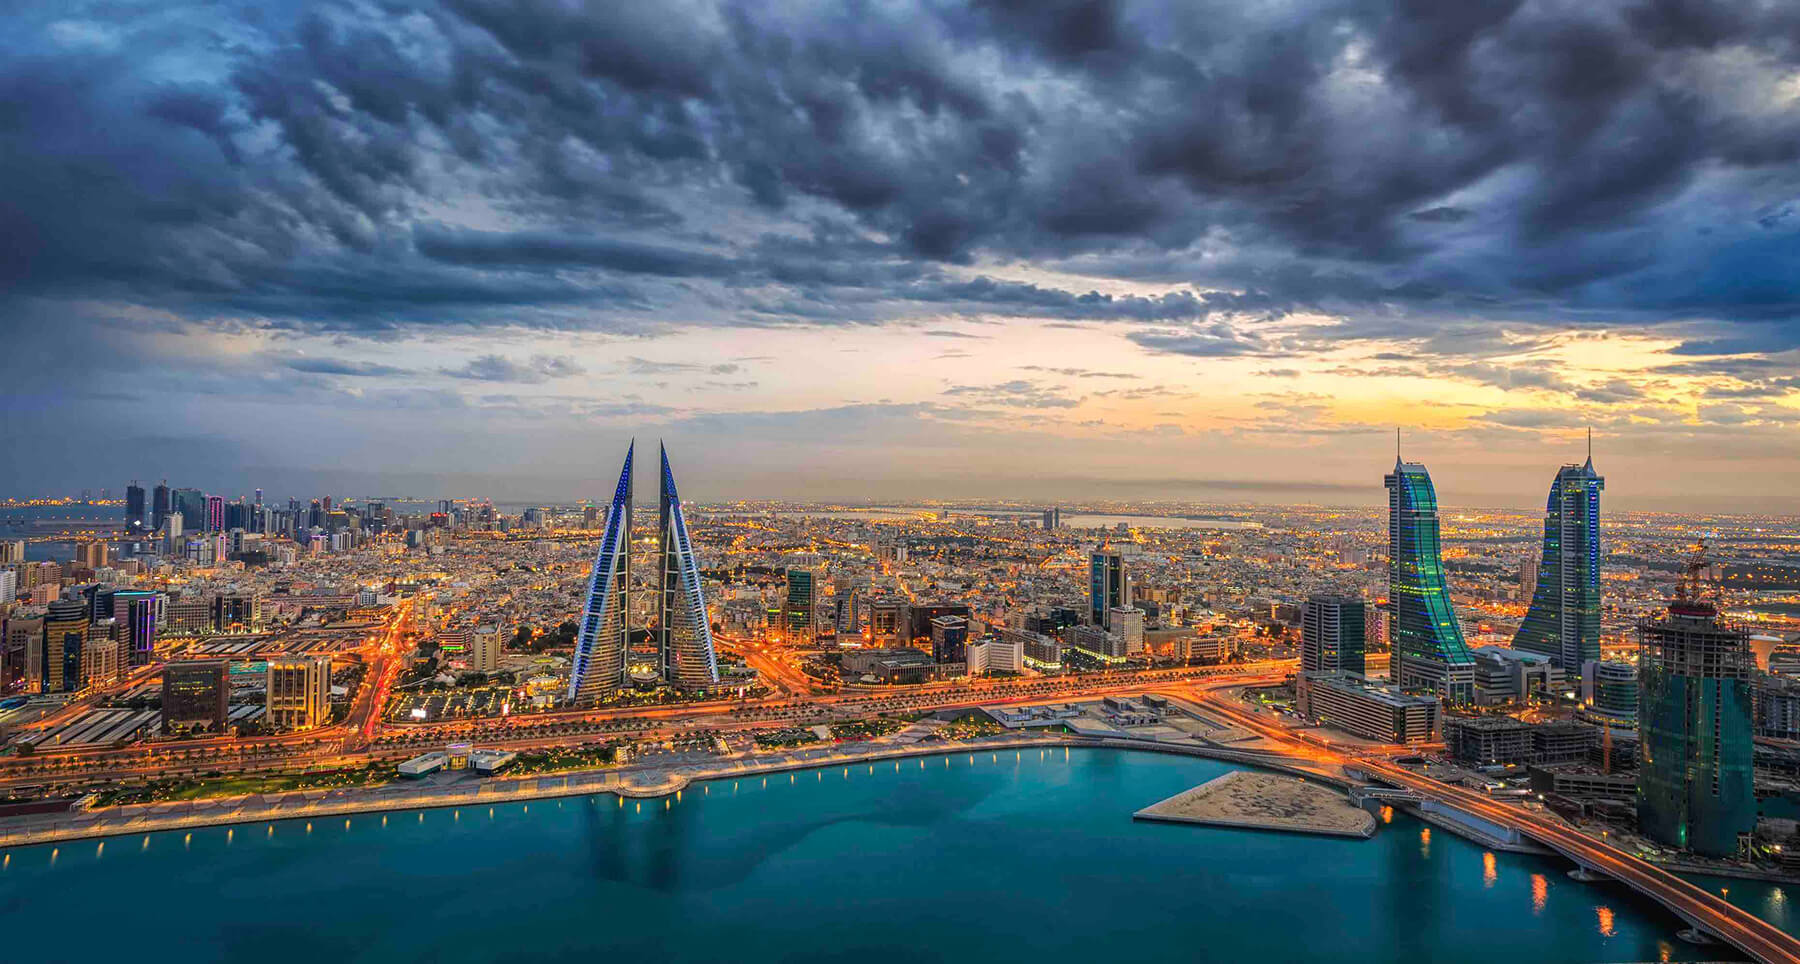 Bahrain best place for expats in Middle East, reveals new study